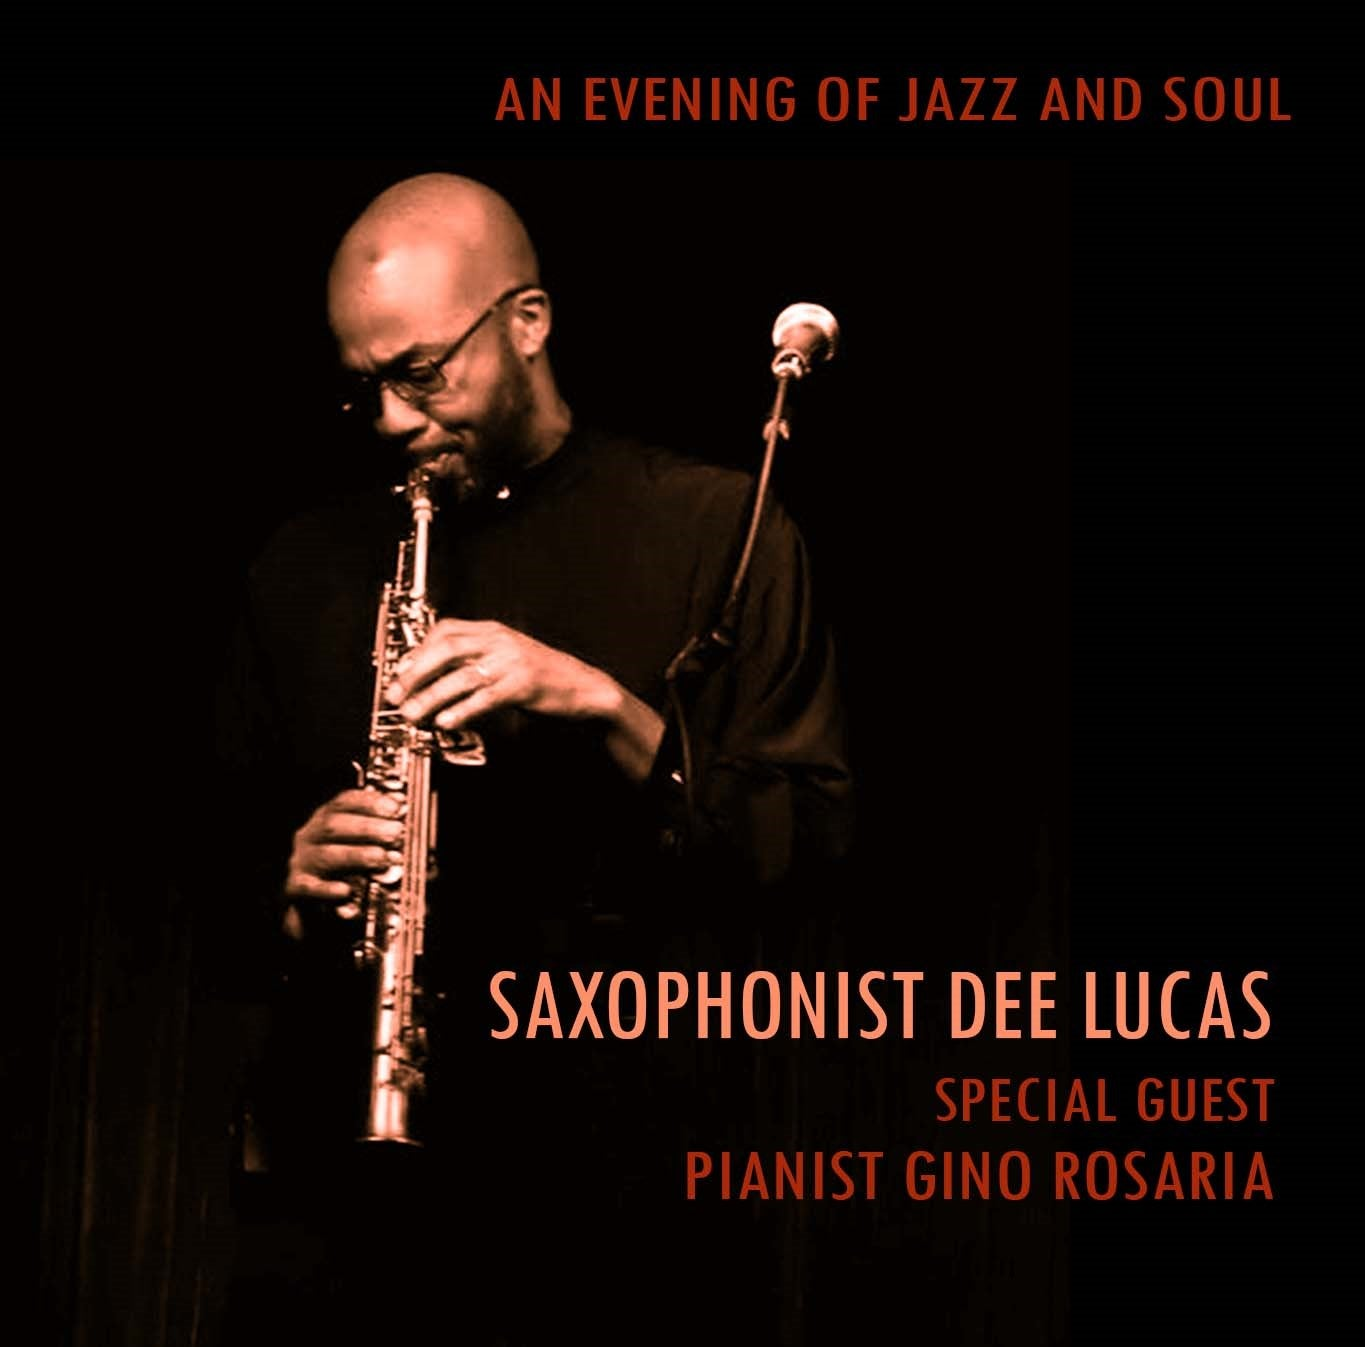 An Evening of Jazz & Soul - Saxophonist Dee Lucas with Pianist Gino Rosaria